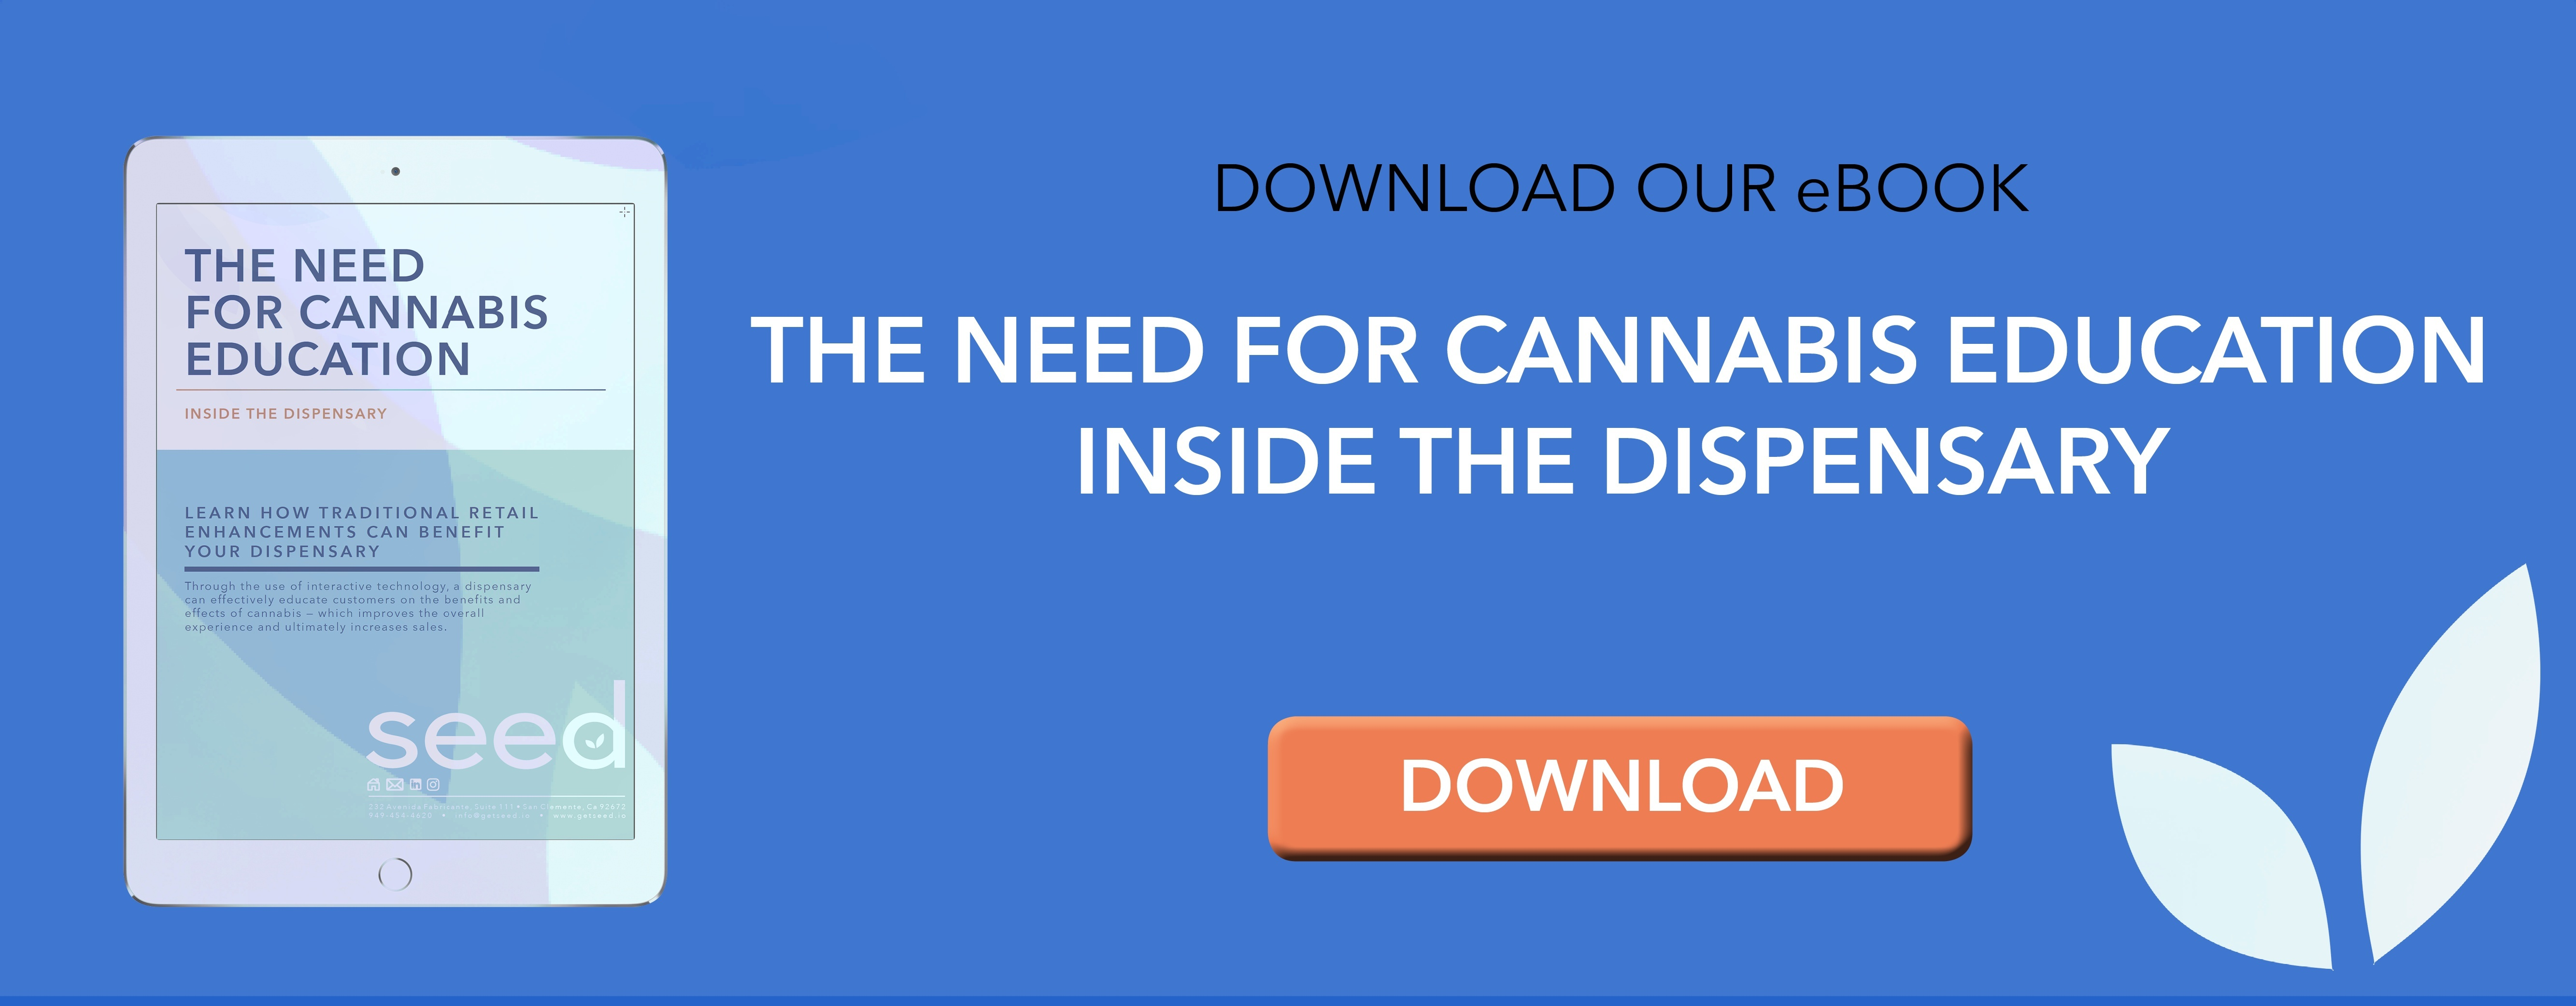 Download free eBook on Cannabis Education inside the Dispensary